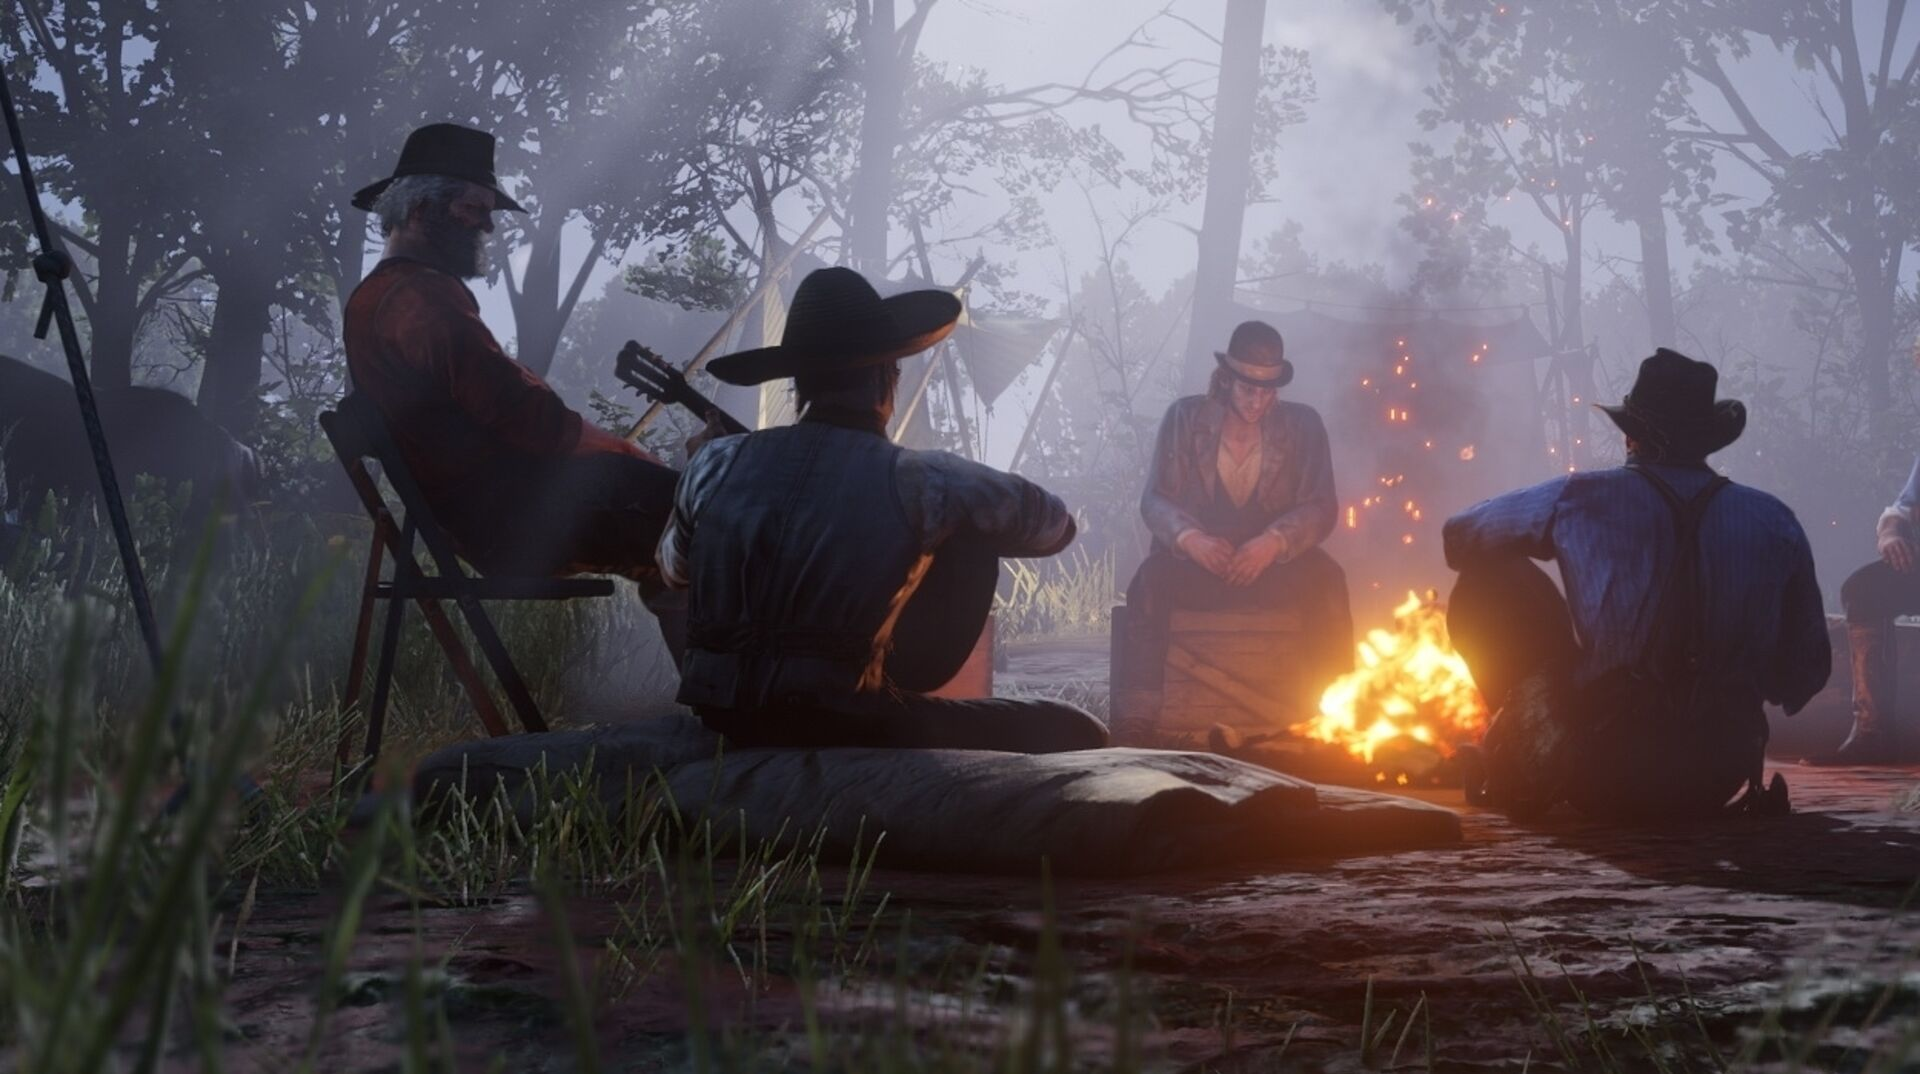 Red Dead Redemption 2's original score is now available on